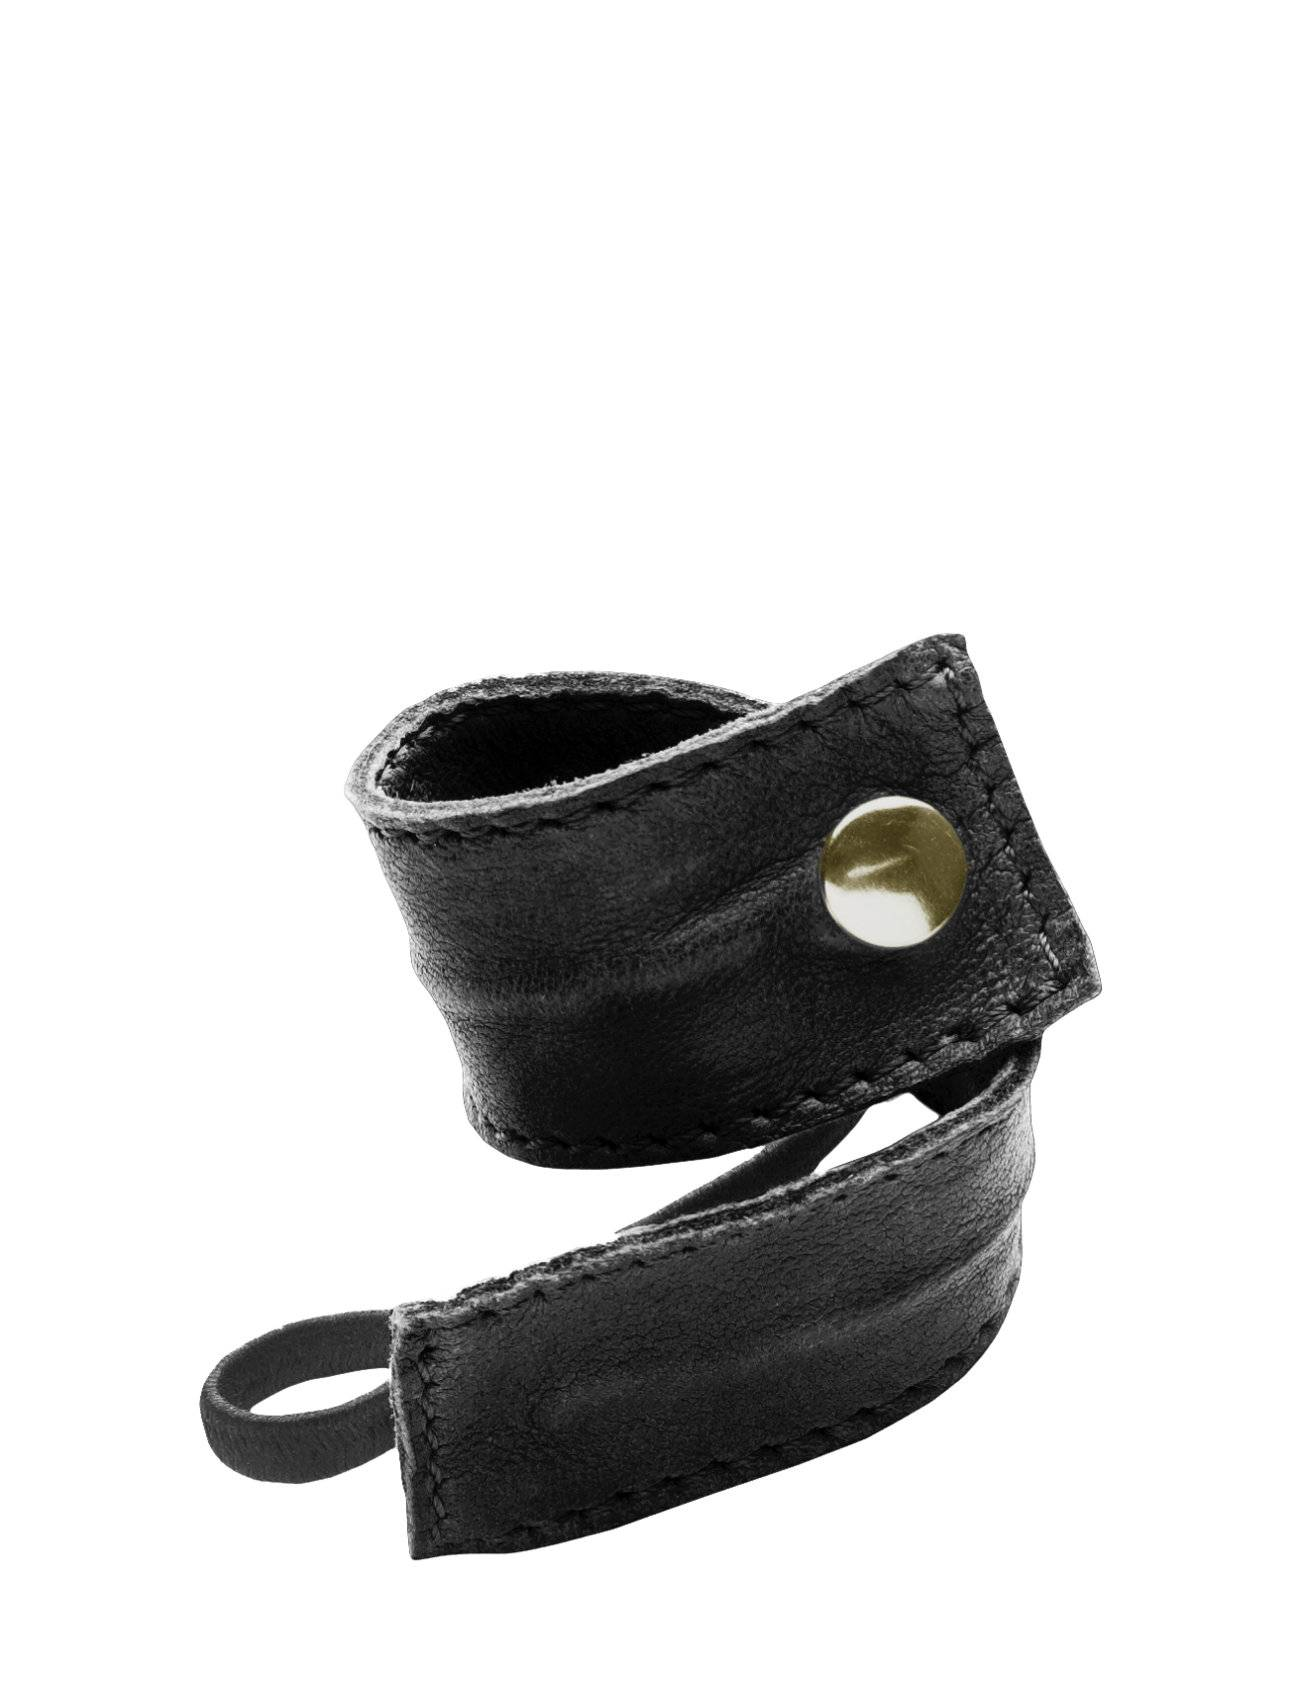 Image of Corinne Leather Band Short Bendable Beauty WOMEN Hair Accessories Hair Accessories Musta Corinne